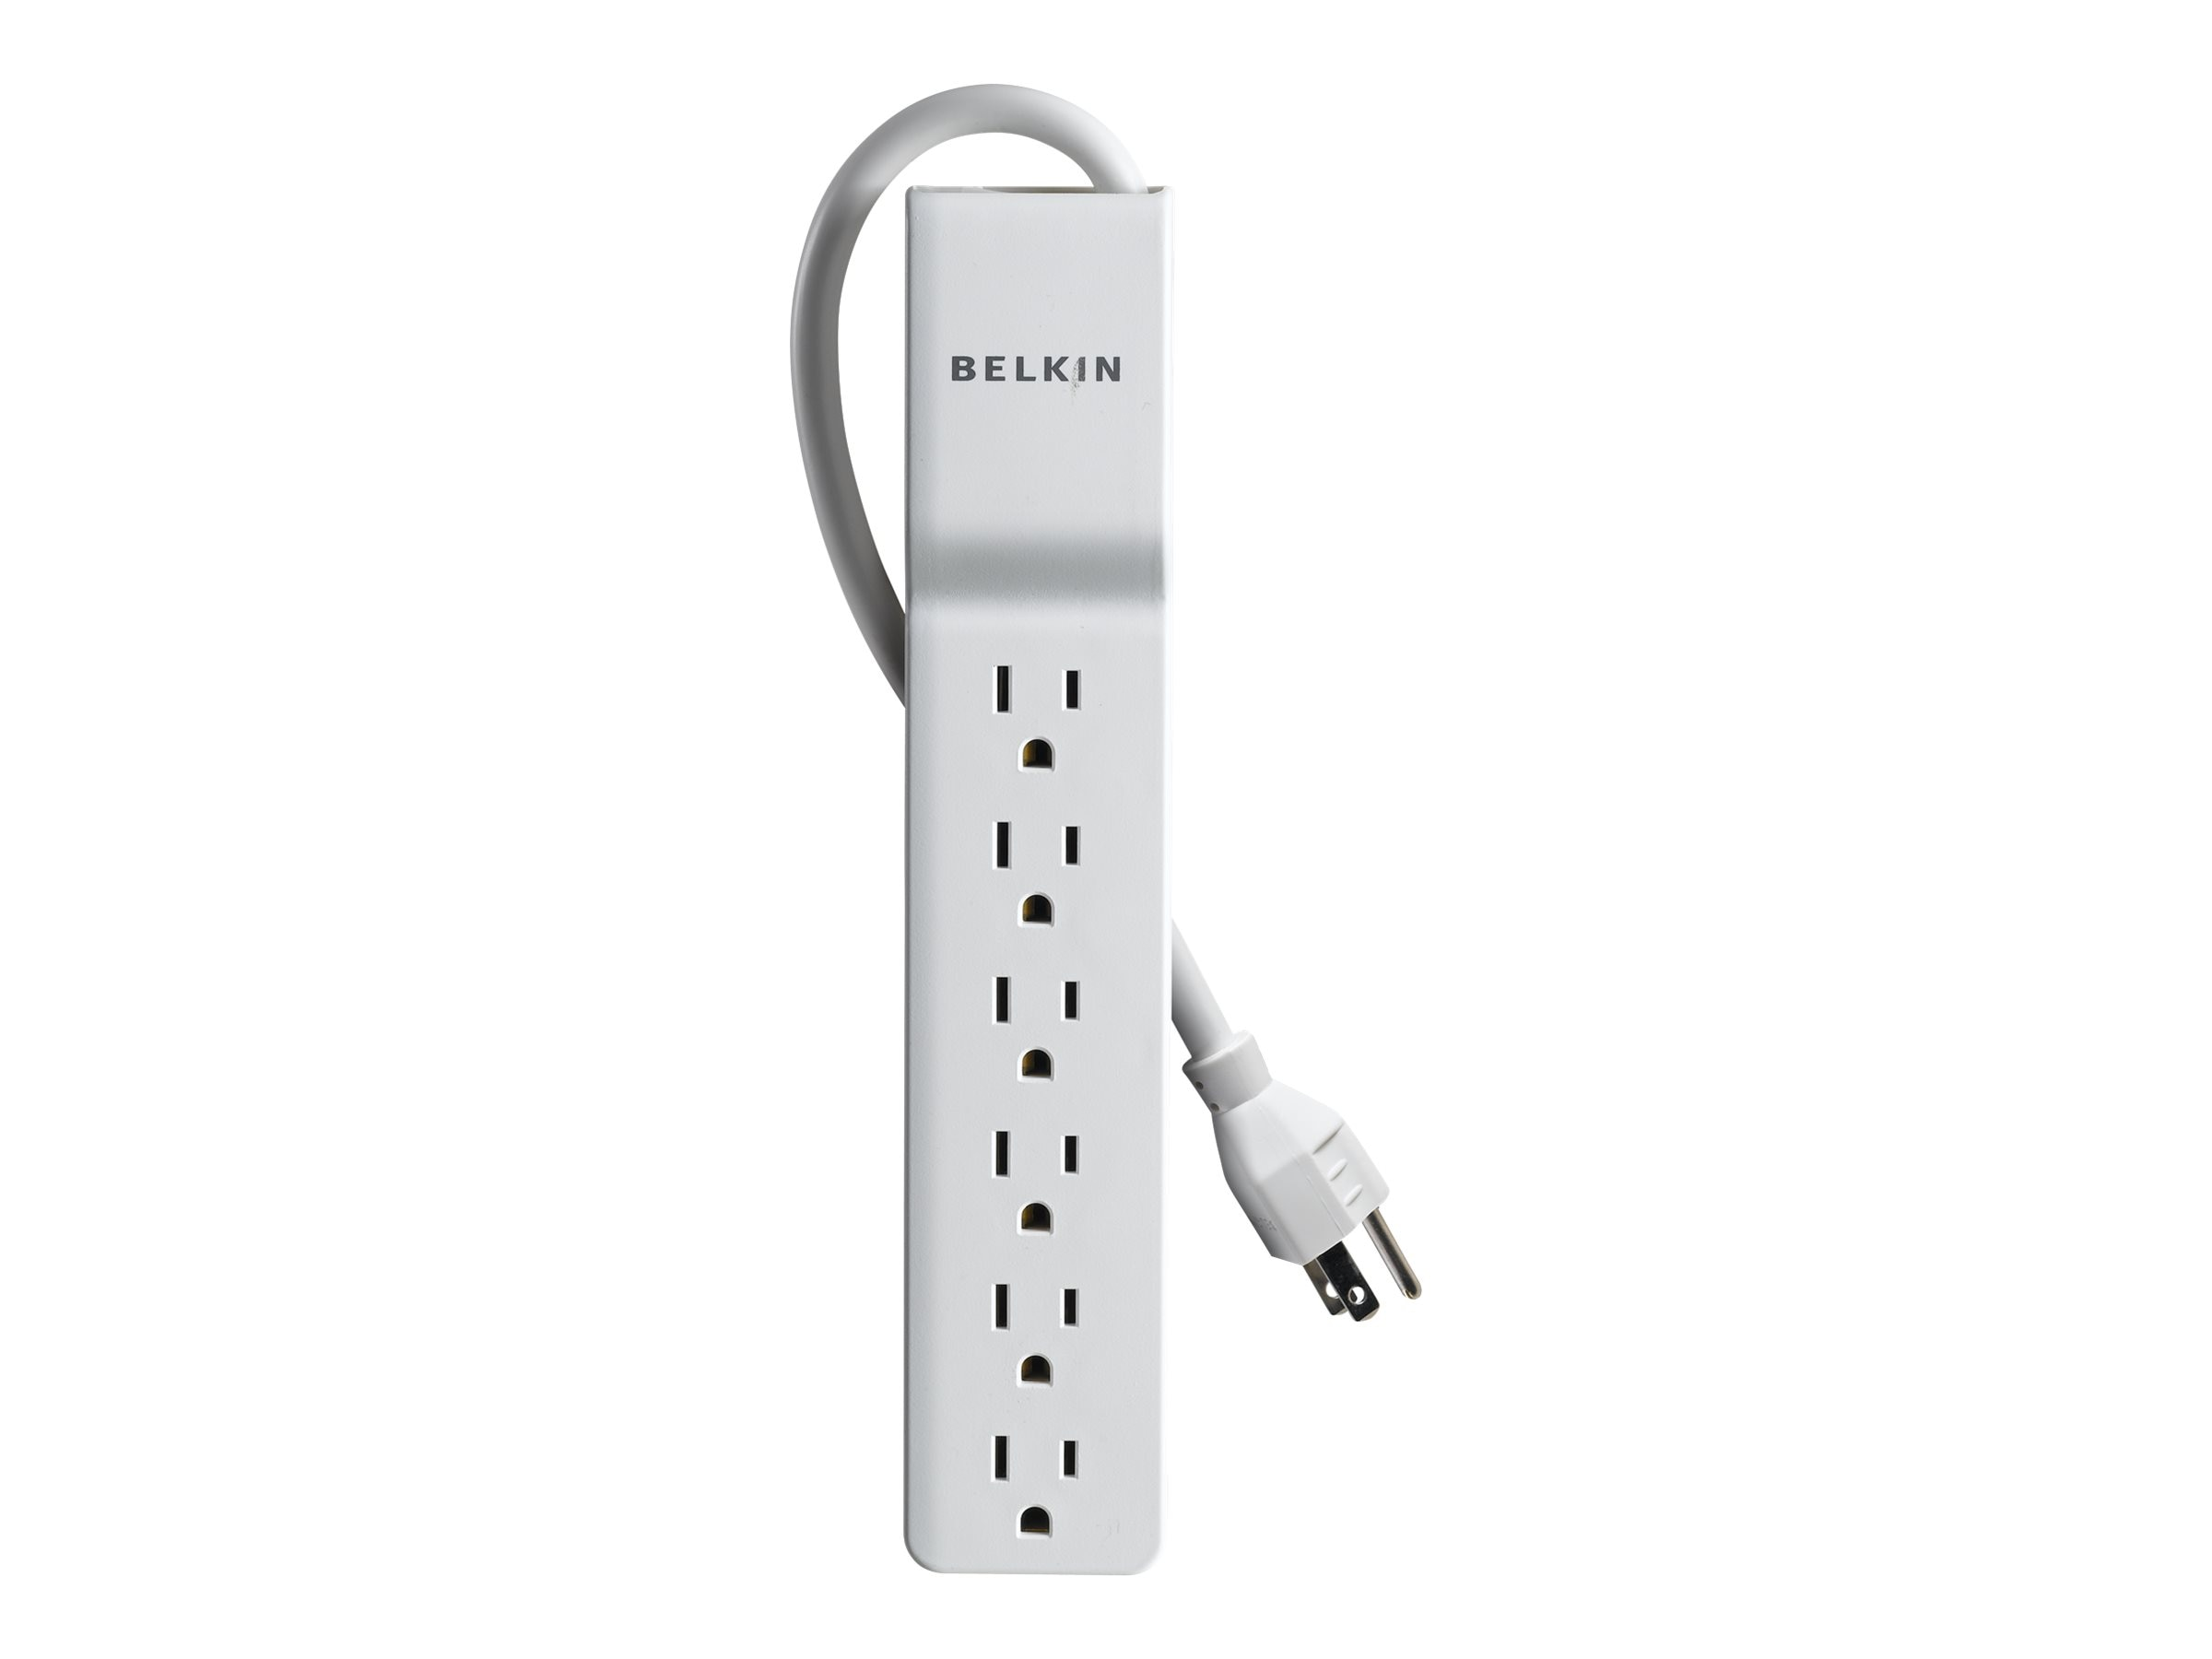 Belkin Home Office Series Surge Protector, 720 Joules, 6-Outlets, 4ft Cord